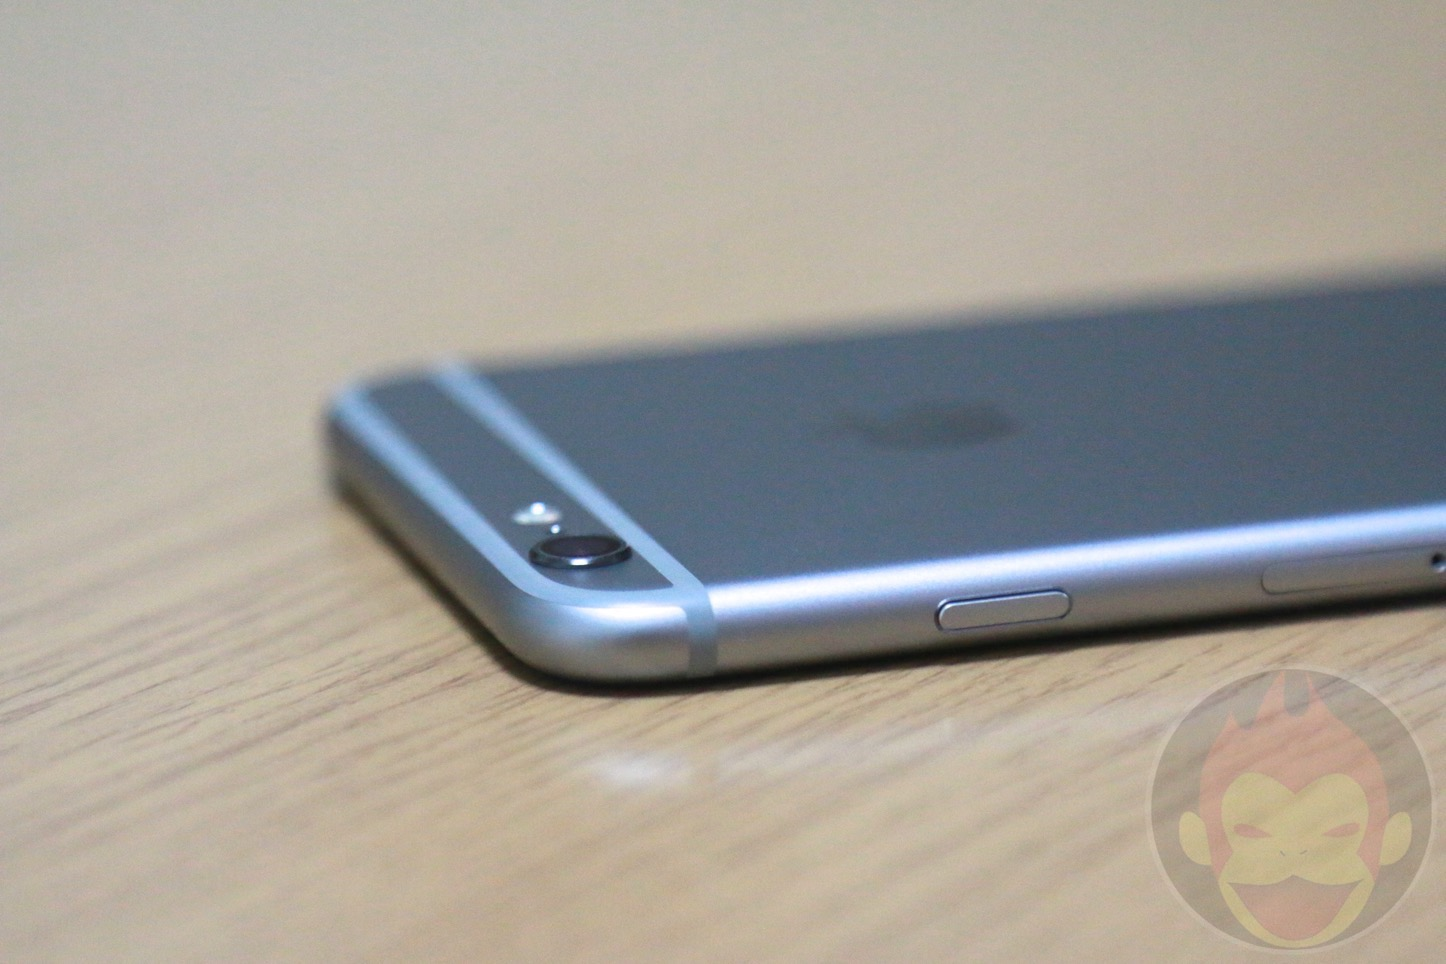 iPhone-6s-Plus-Photo-Review-16.jpg